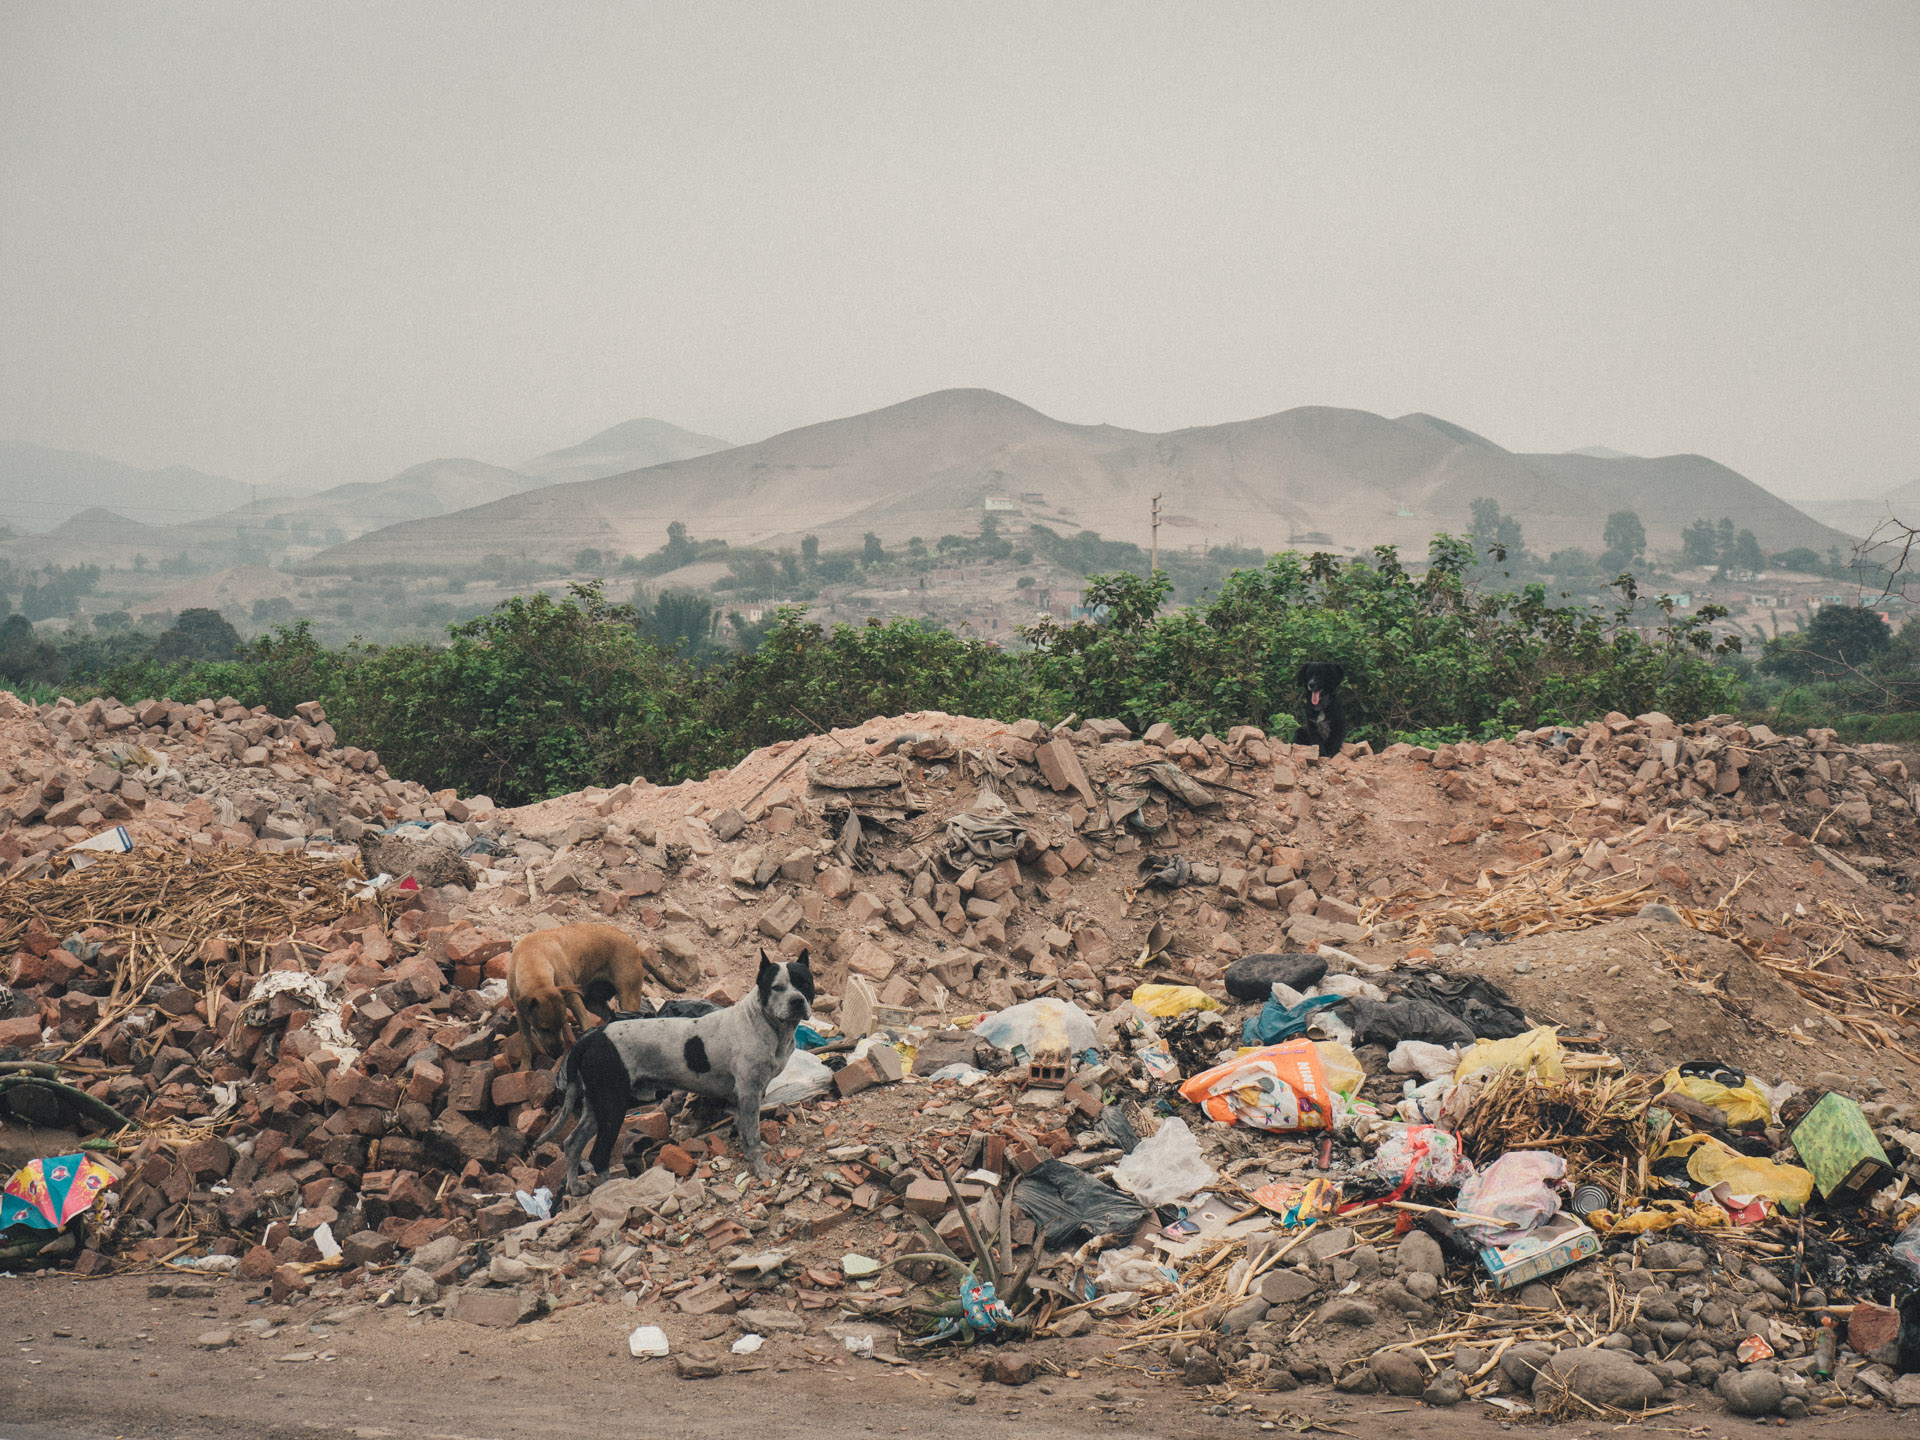 A common sight along the Pan-american Highway in Peru: trash and straydogs.